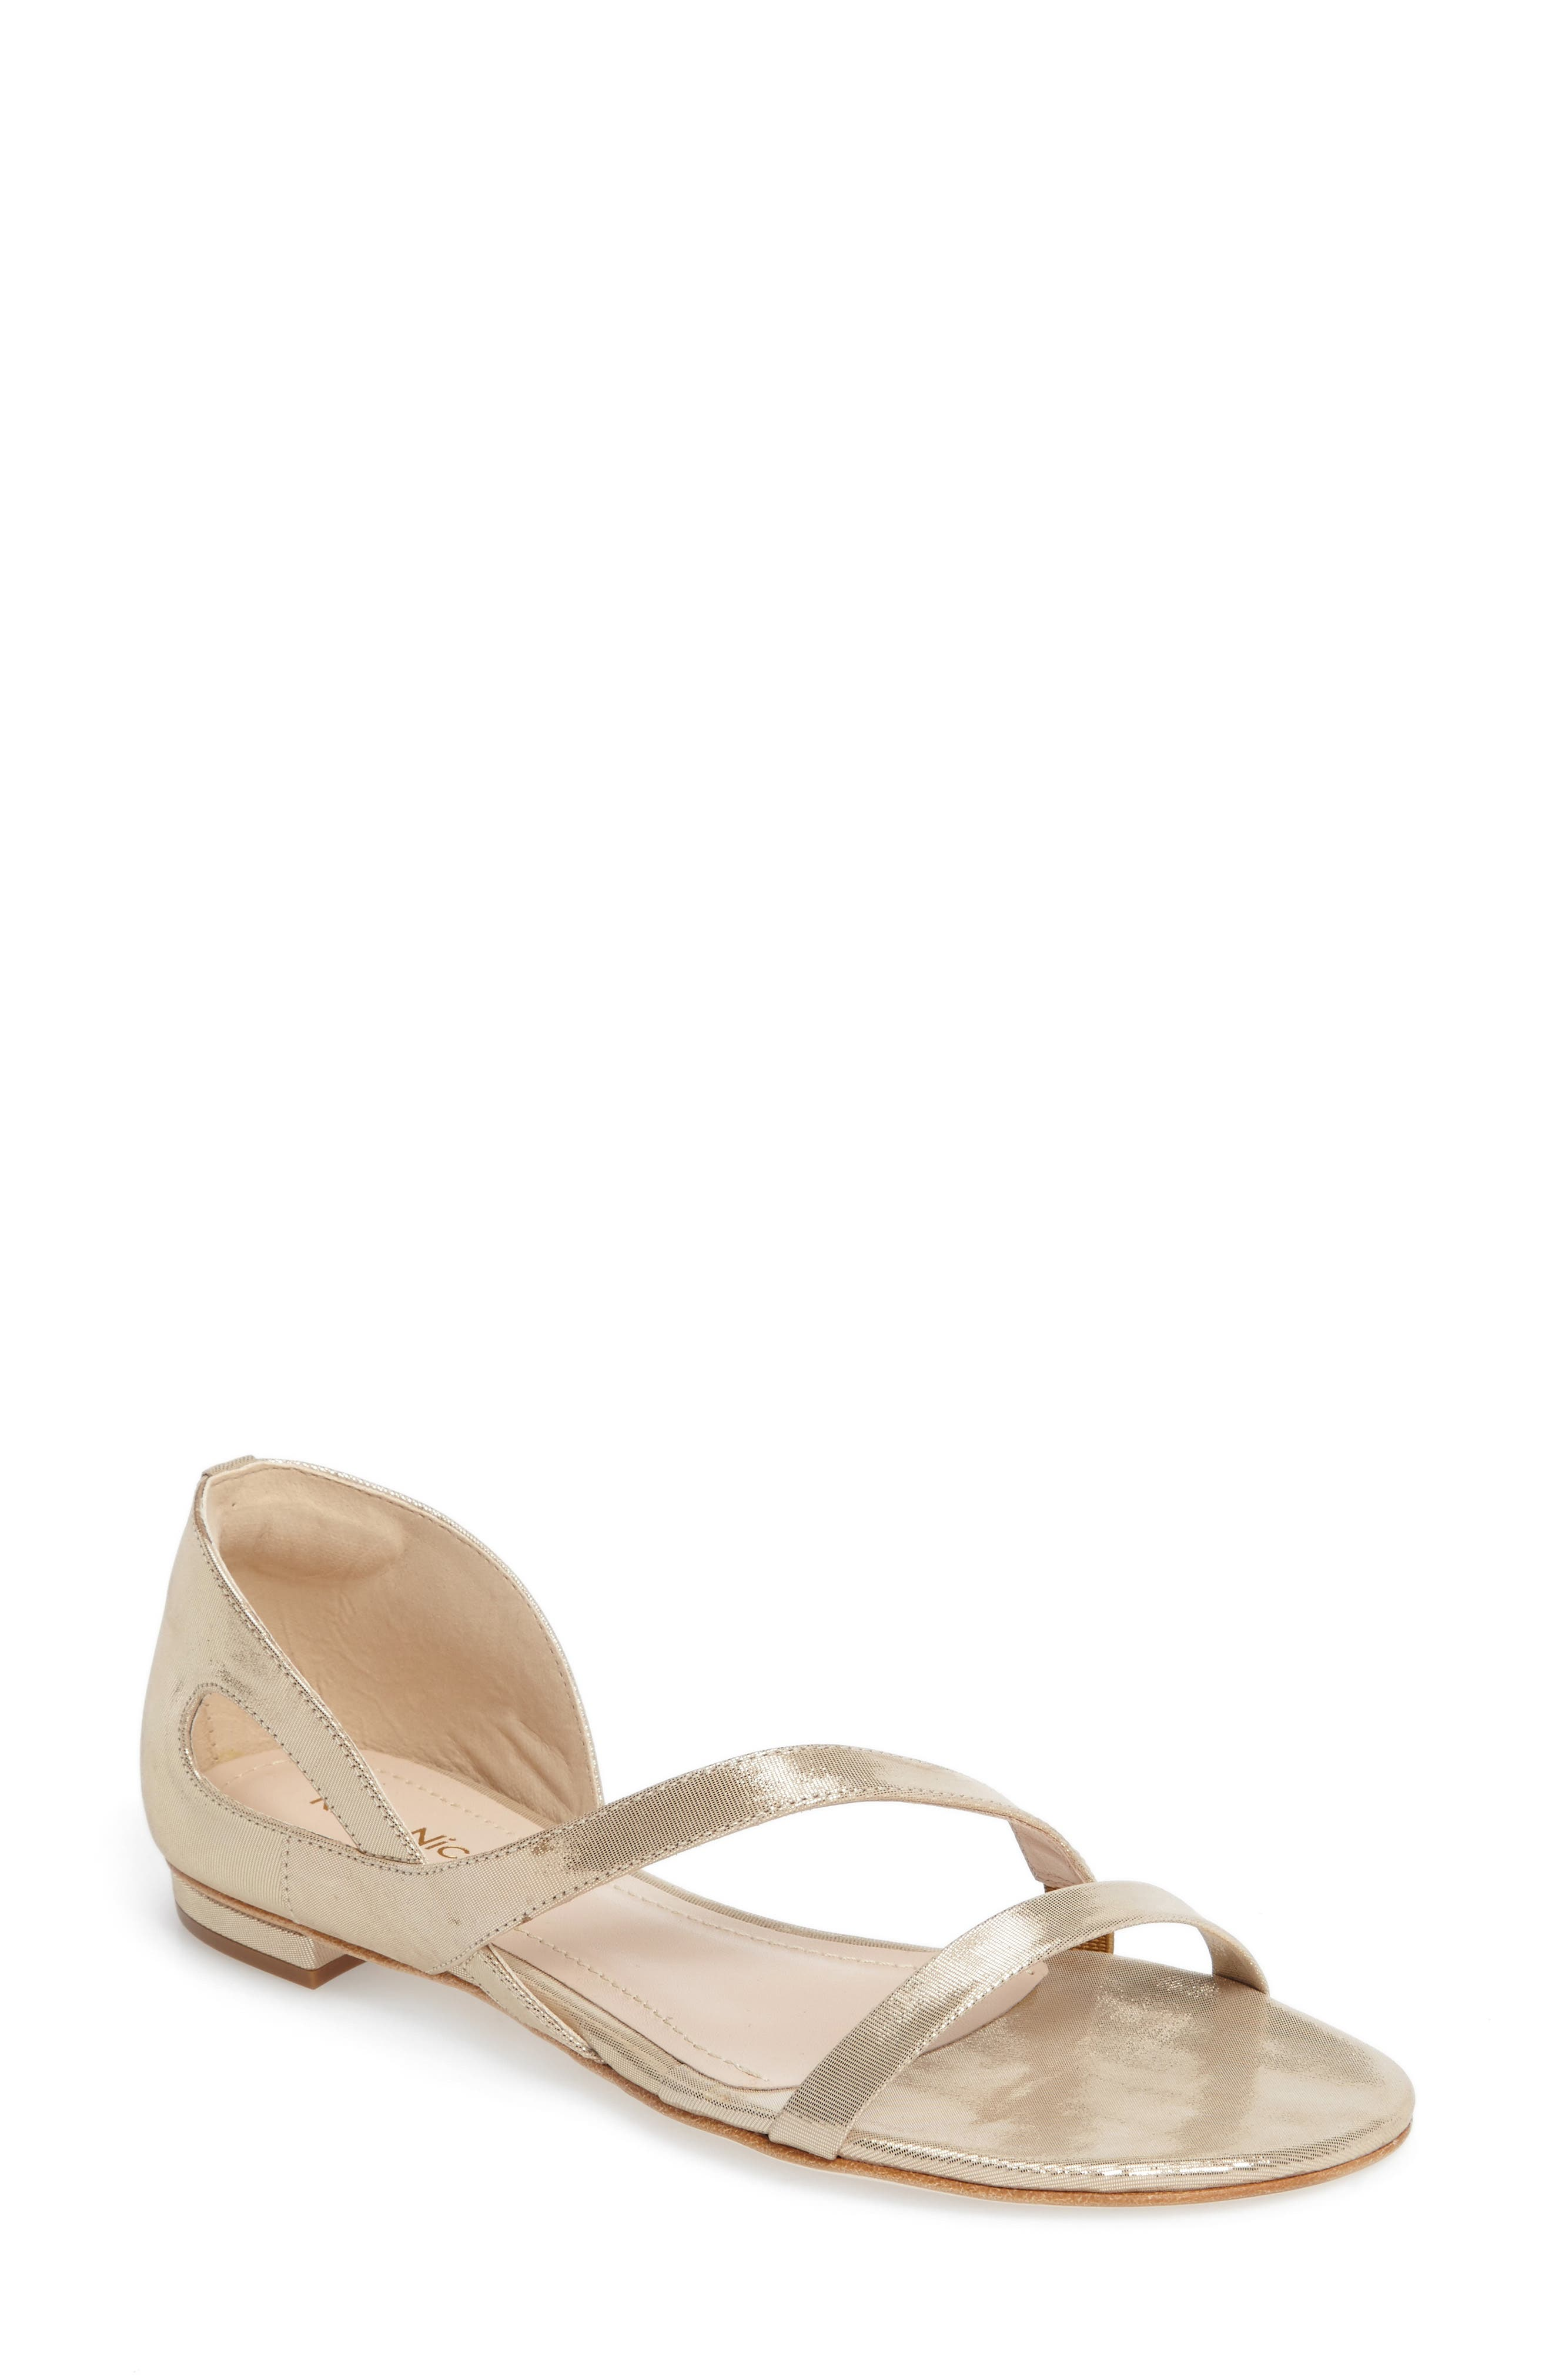 Jeanne Sandal,                             Main thumbnail 1, color,                             Champagne Leather